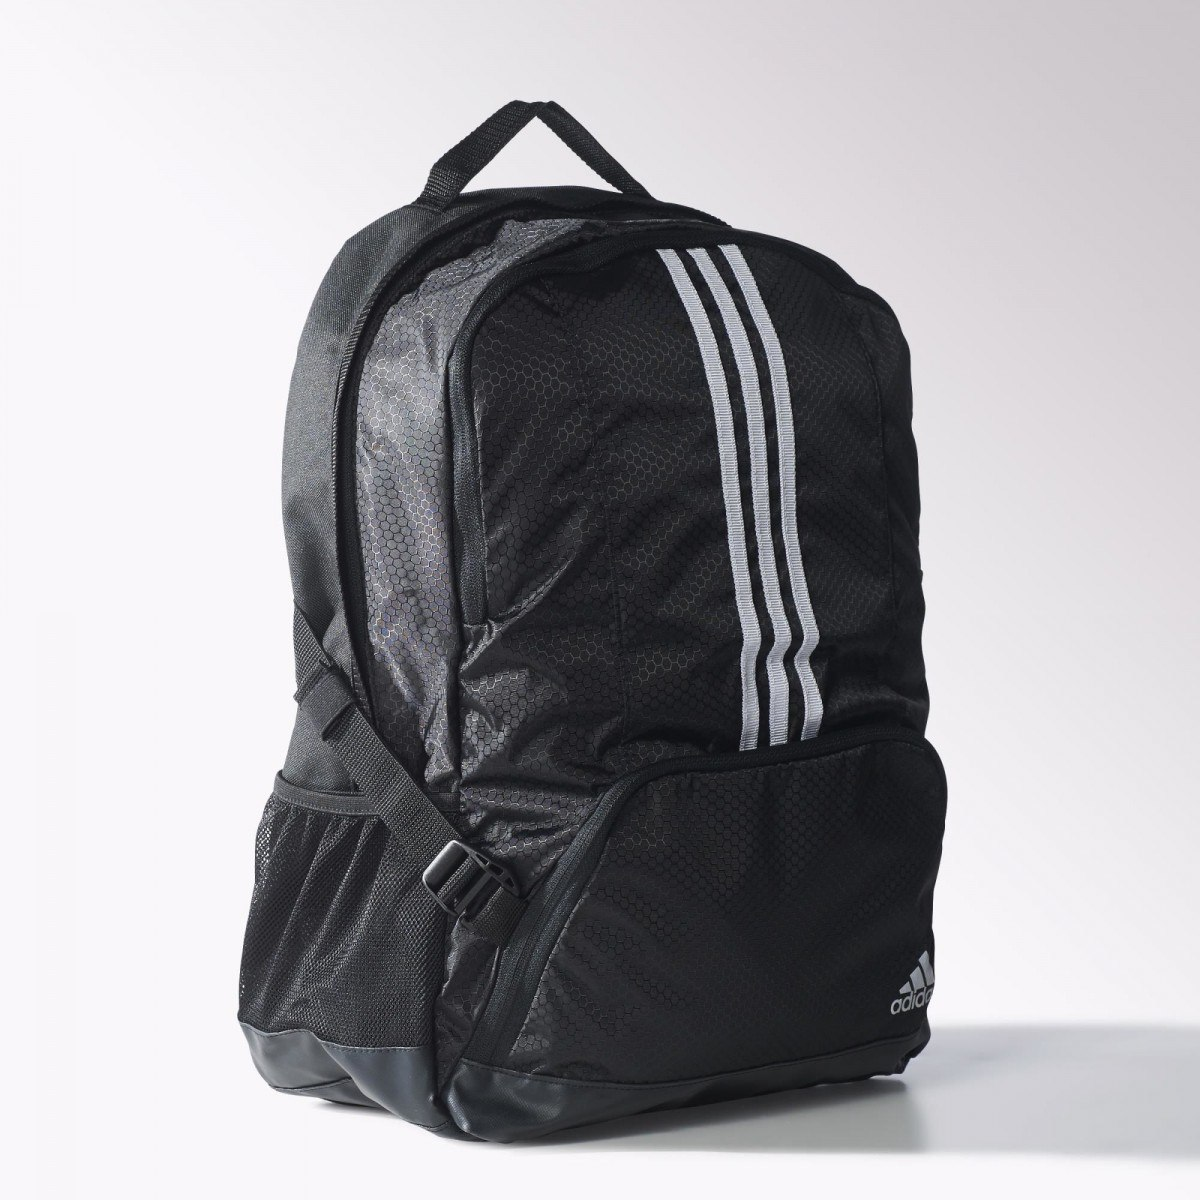 cc64641cf4d Mochila adidas M67828 Training 3s Essentials Original+nf - R  159